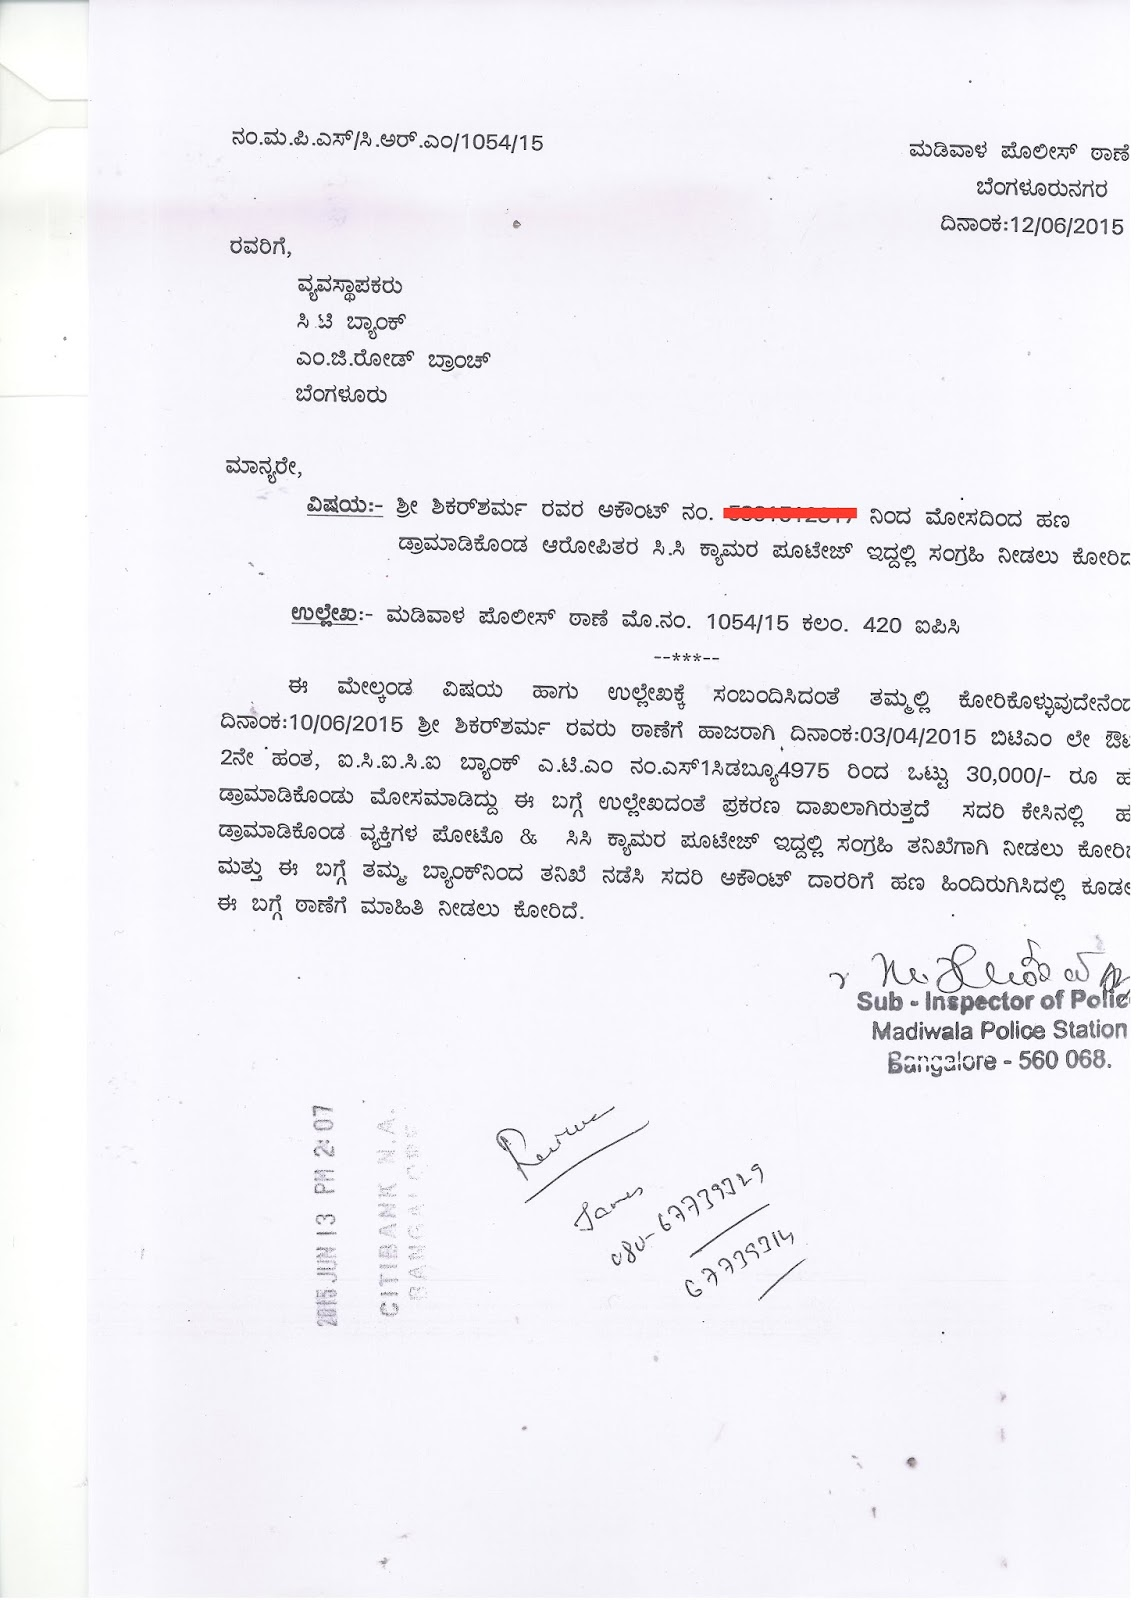 LETTER WRITING FOR SBI PO - NET BANKING ACTIVATION